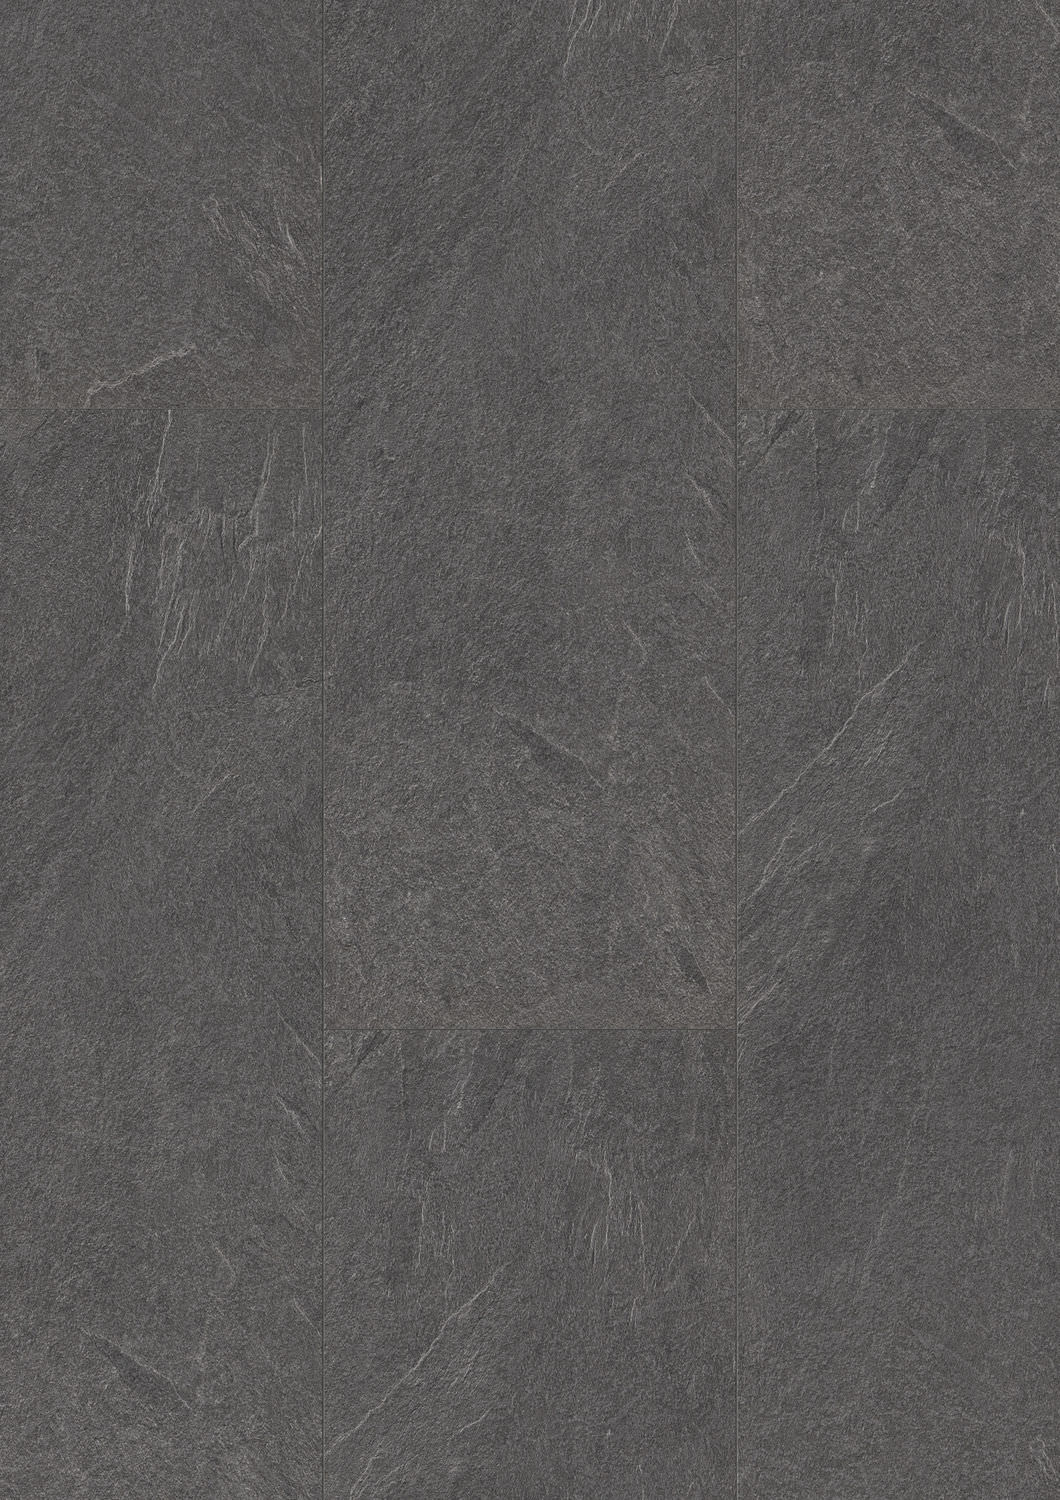 Hdf Laminate Flooring Click Fit Stone Look Tile Look Medium